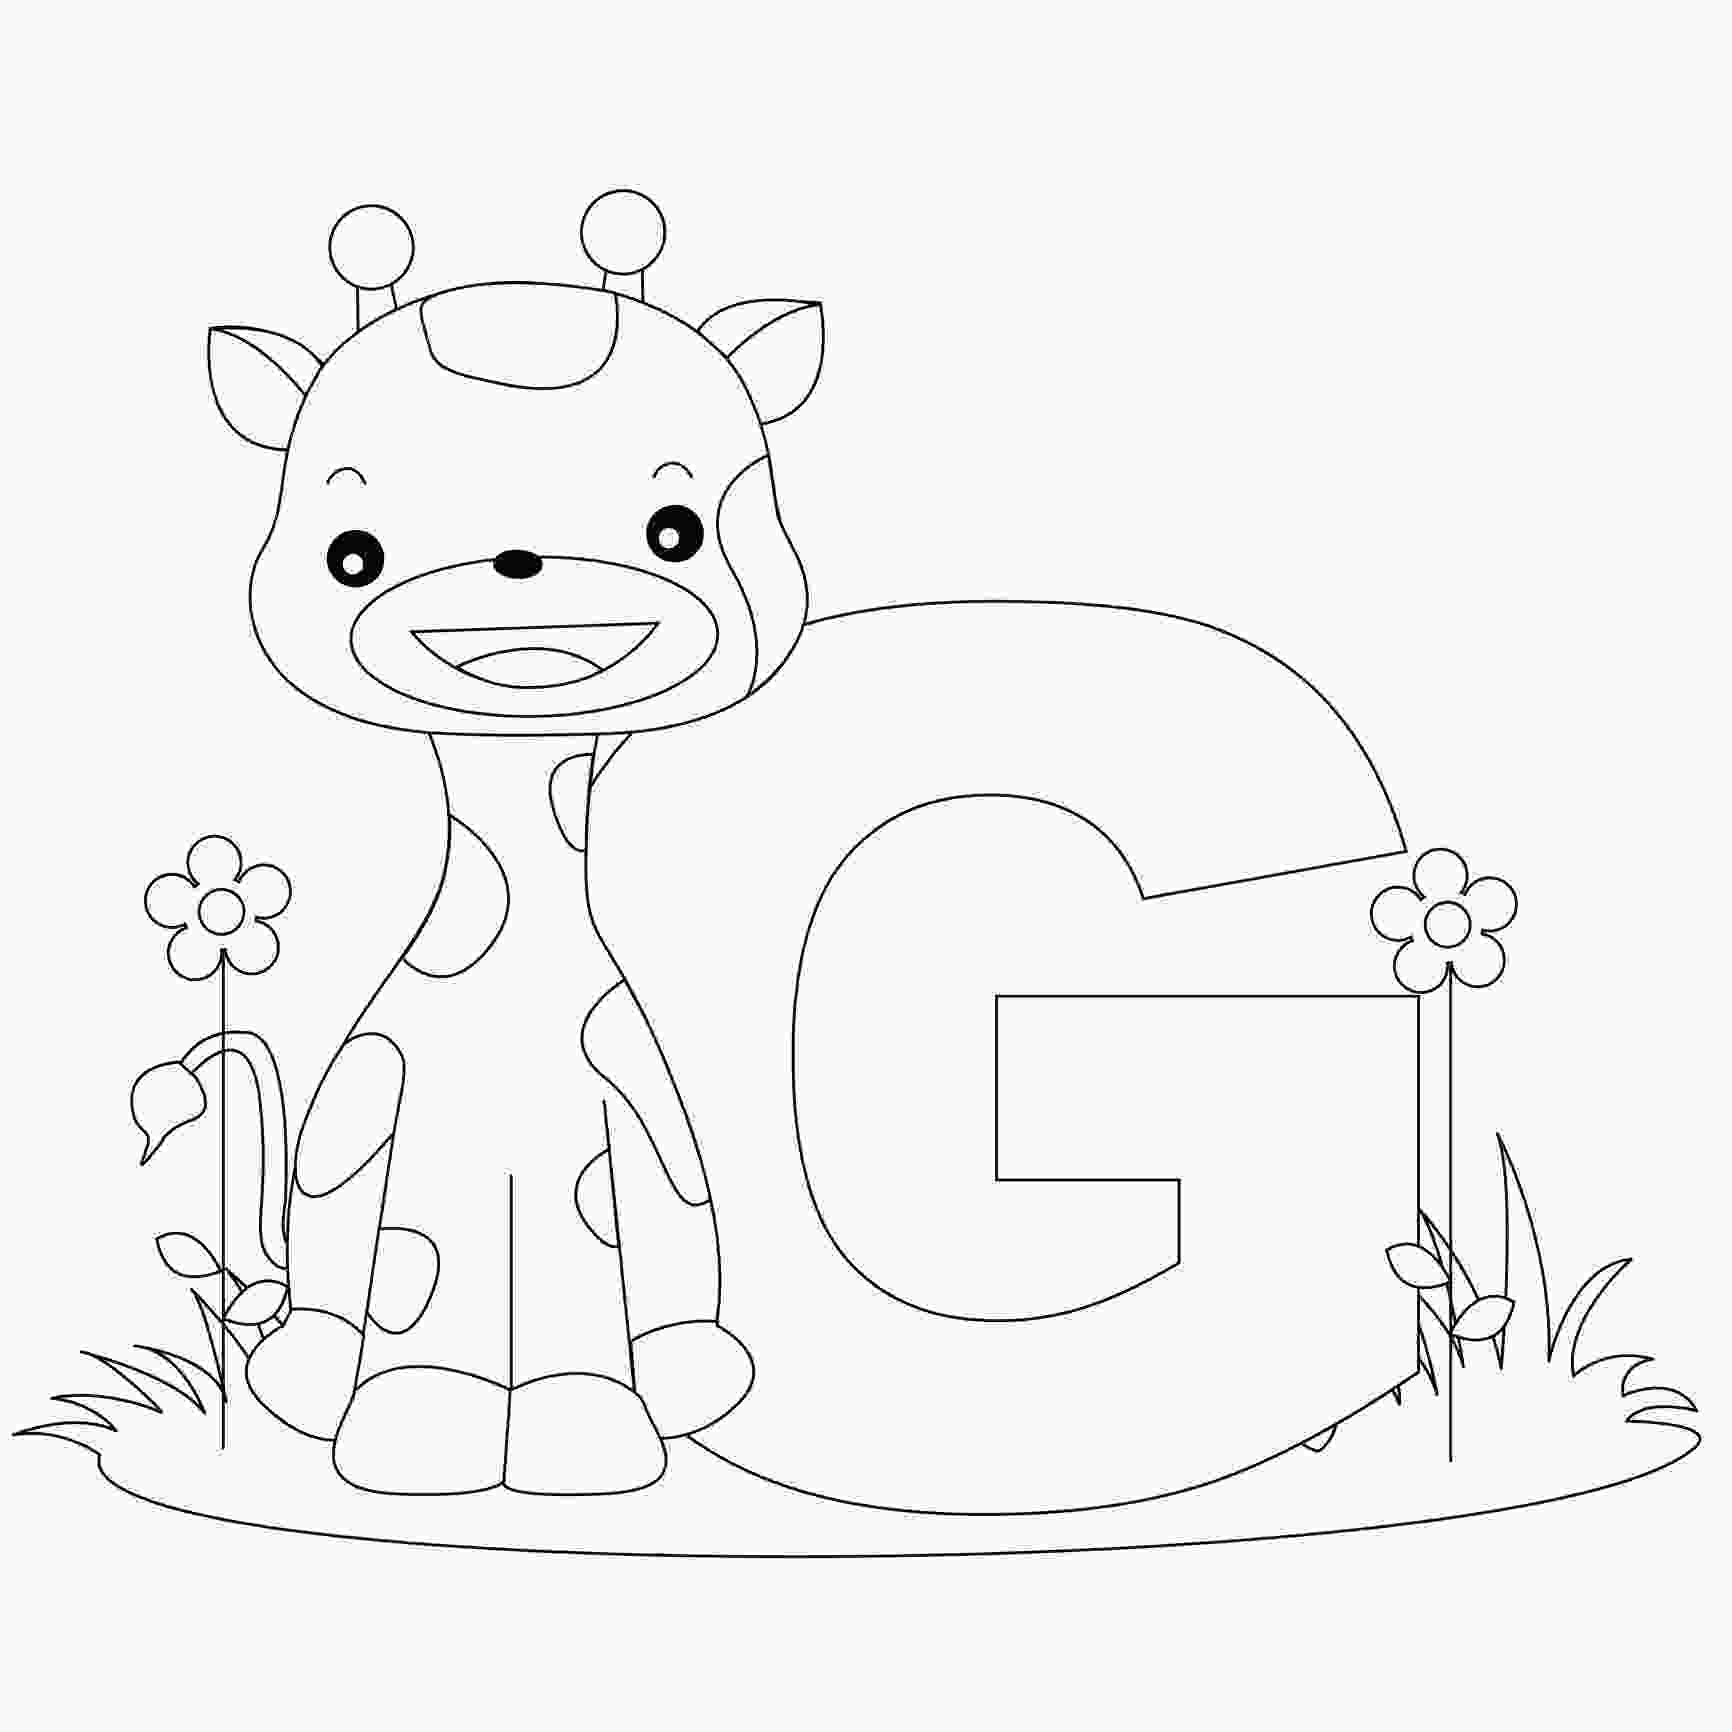 kindergarten alphabet coloring pages free printable alphabet coloring pages for kids best